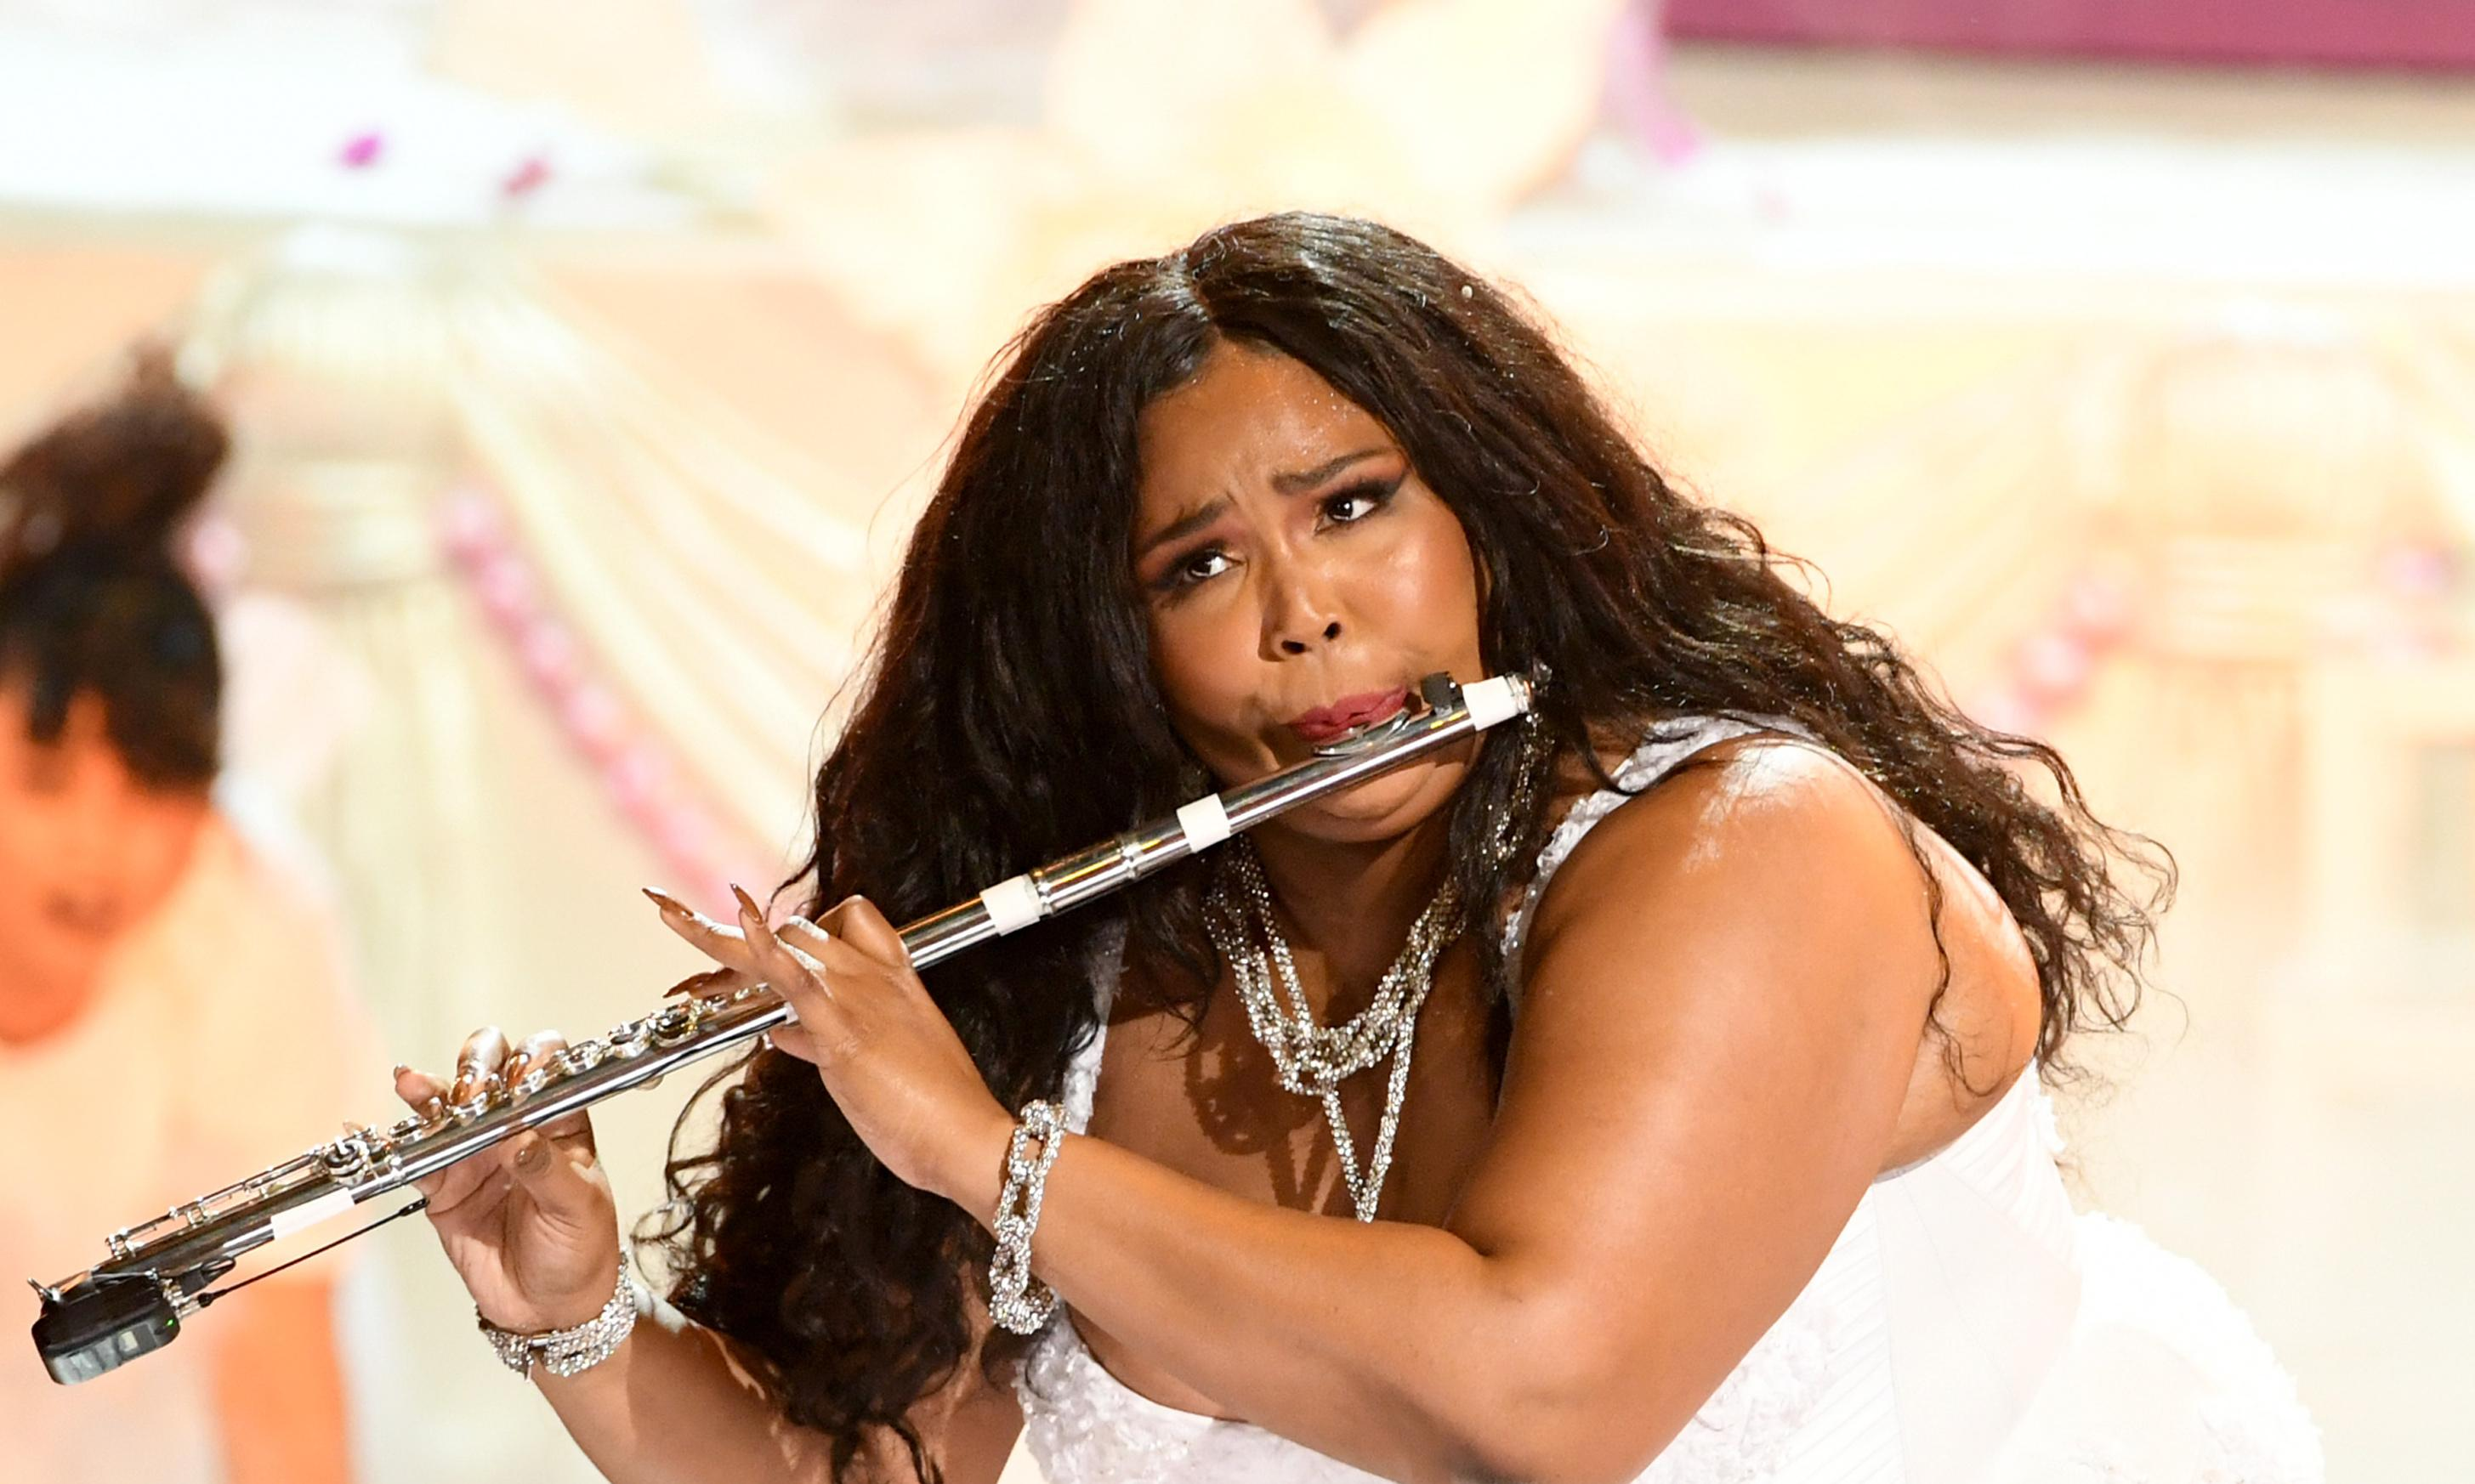 Flutes you: Lizzo and the woodwind renaissance